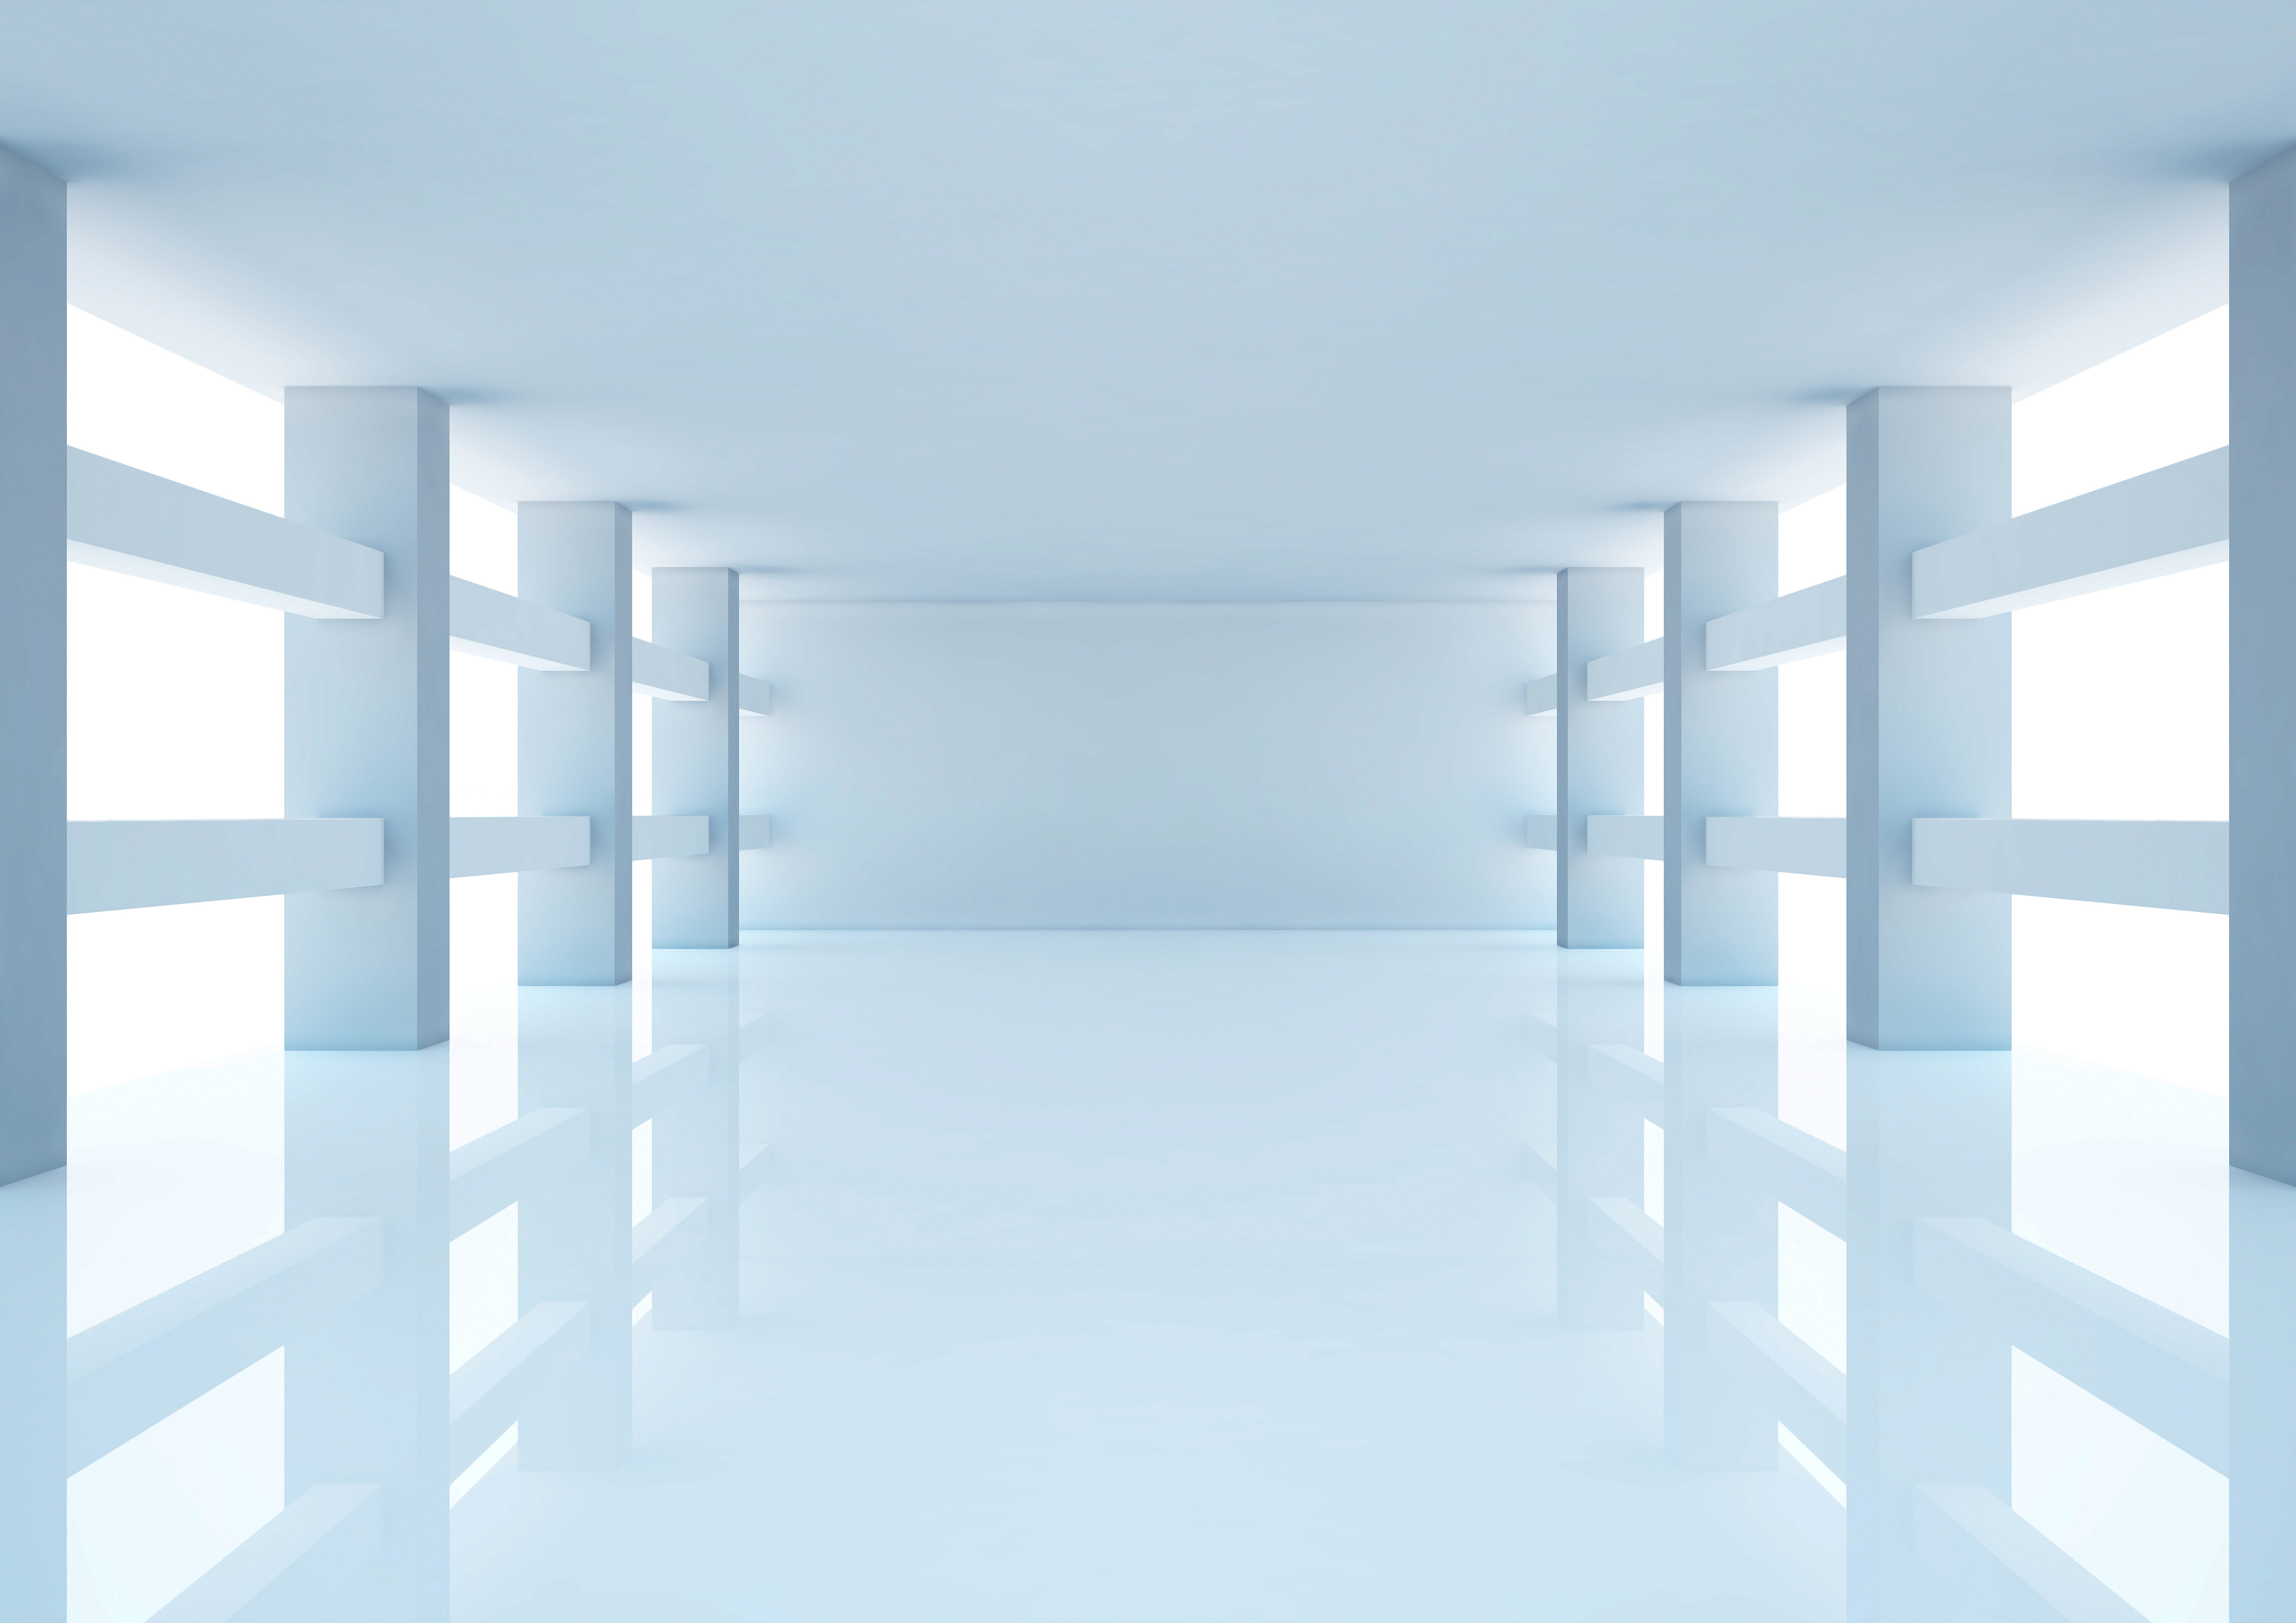 Empty white room with columns and windows 3d illus by winampers ...